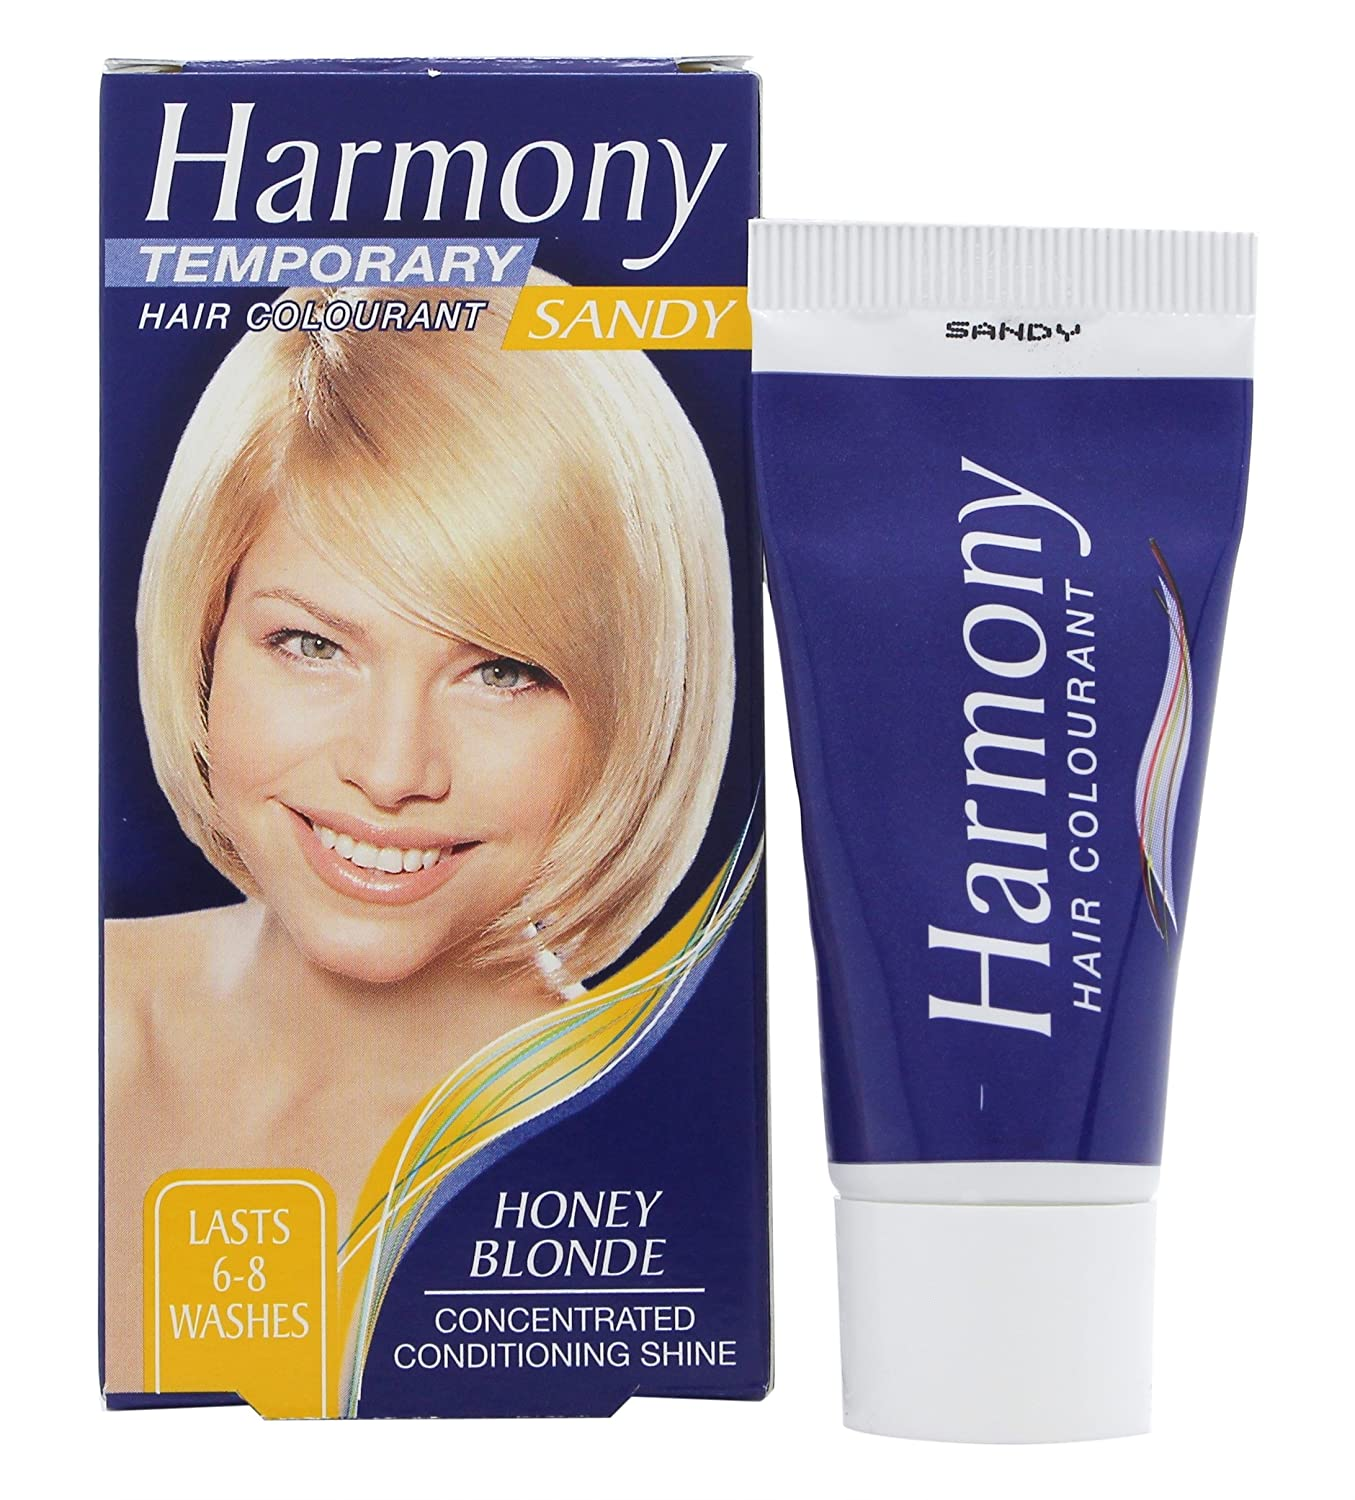 Marion Hair Color Shampoo in Sachet Lasting 4 to 8 Washes Aloe and ...